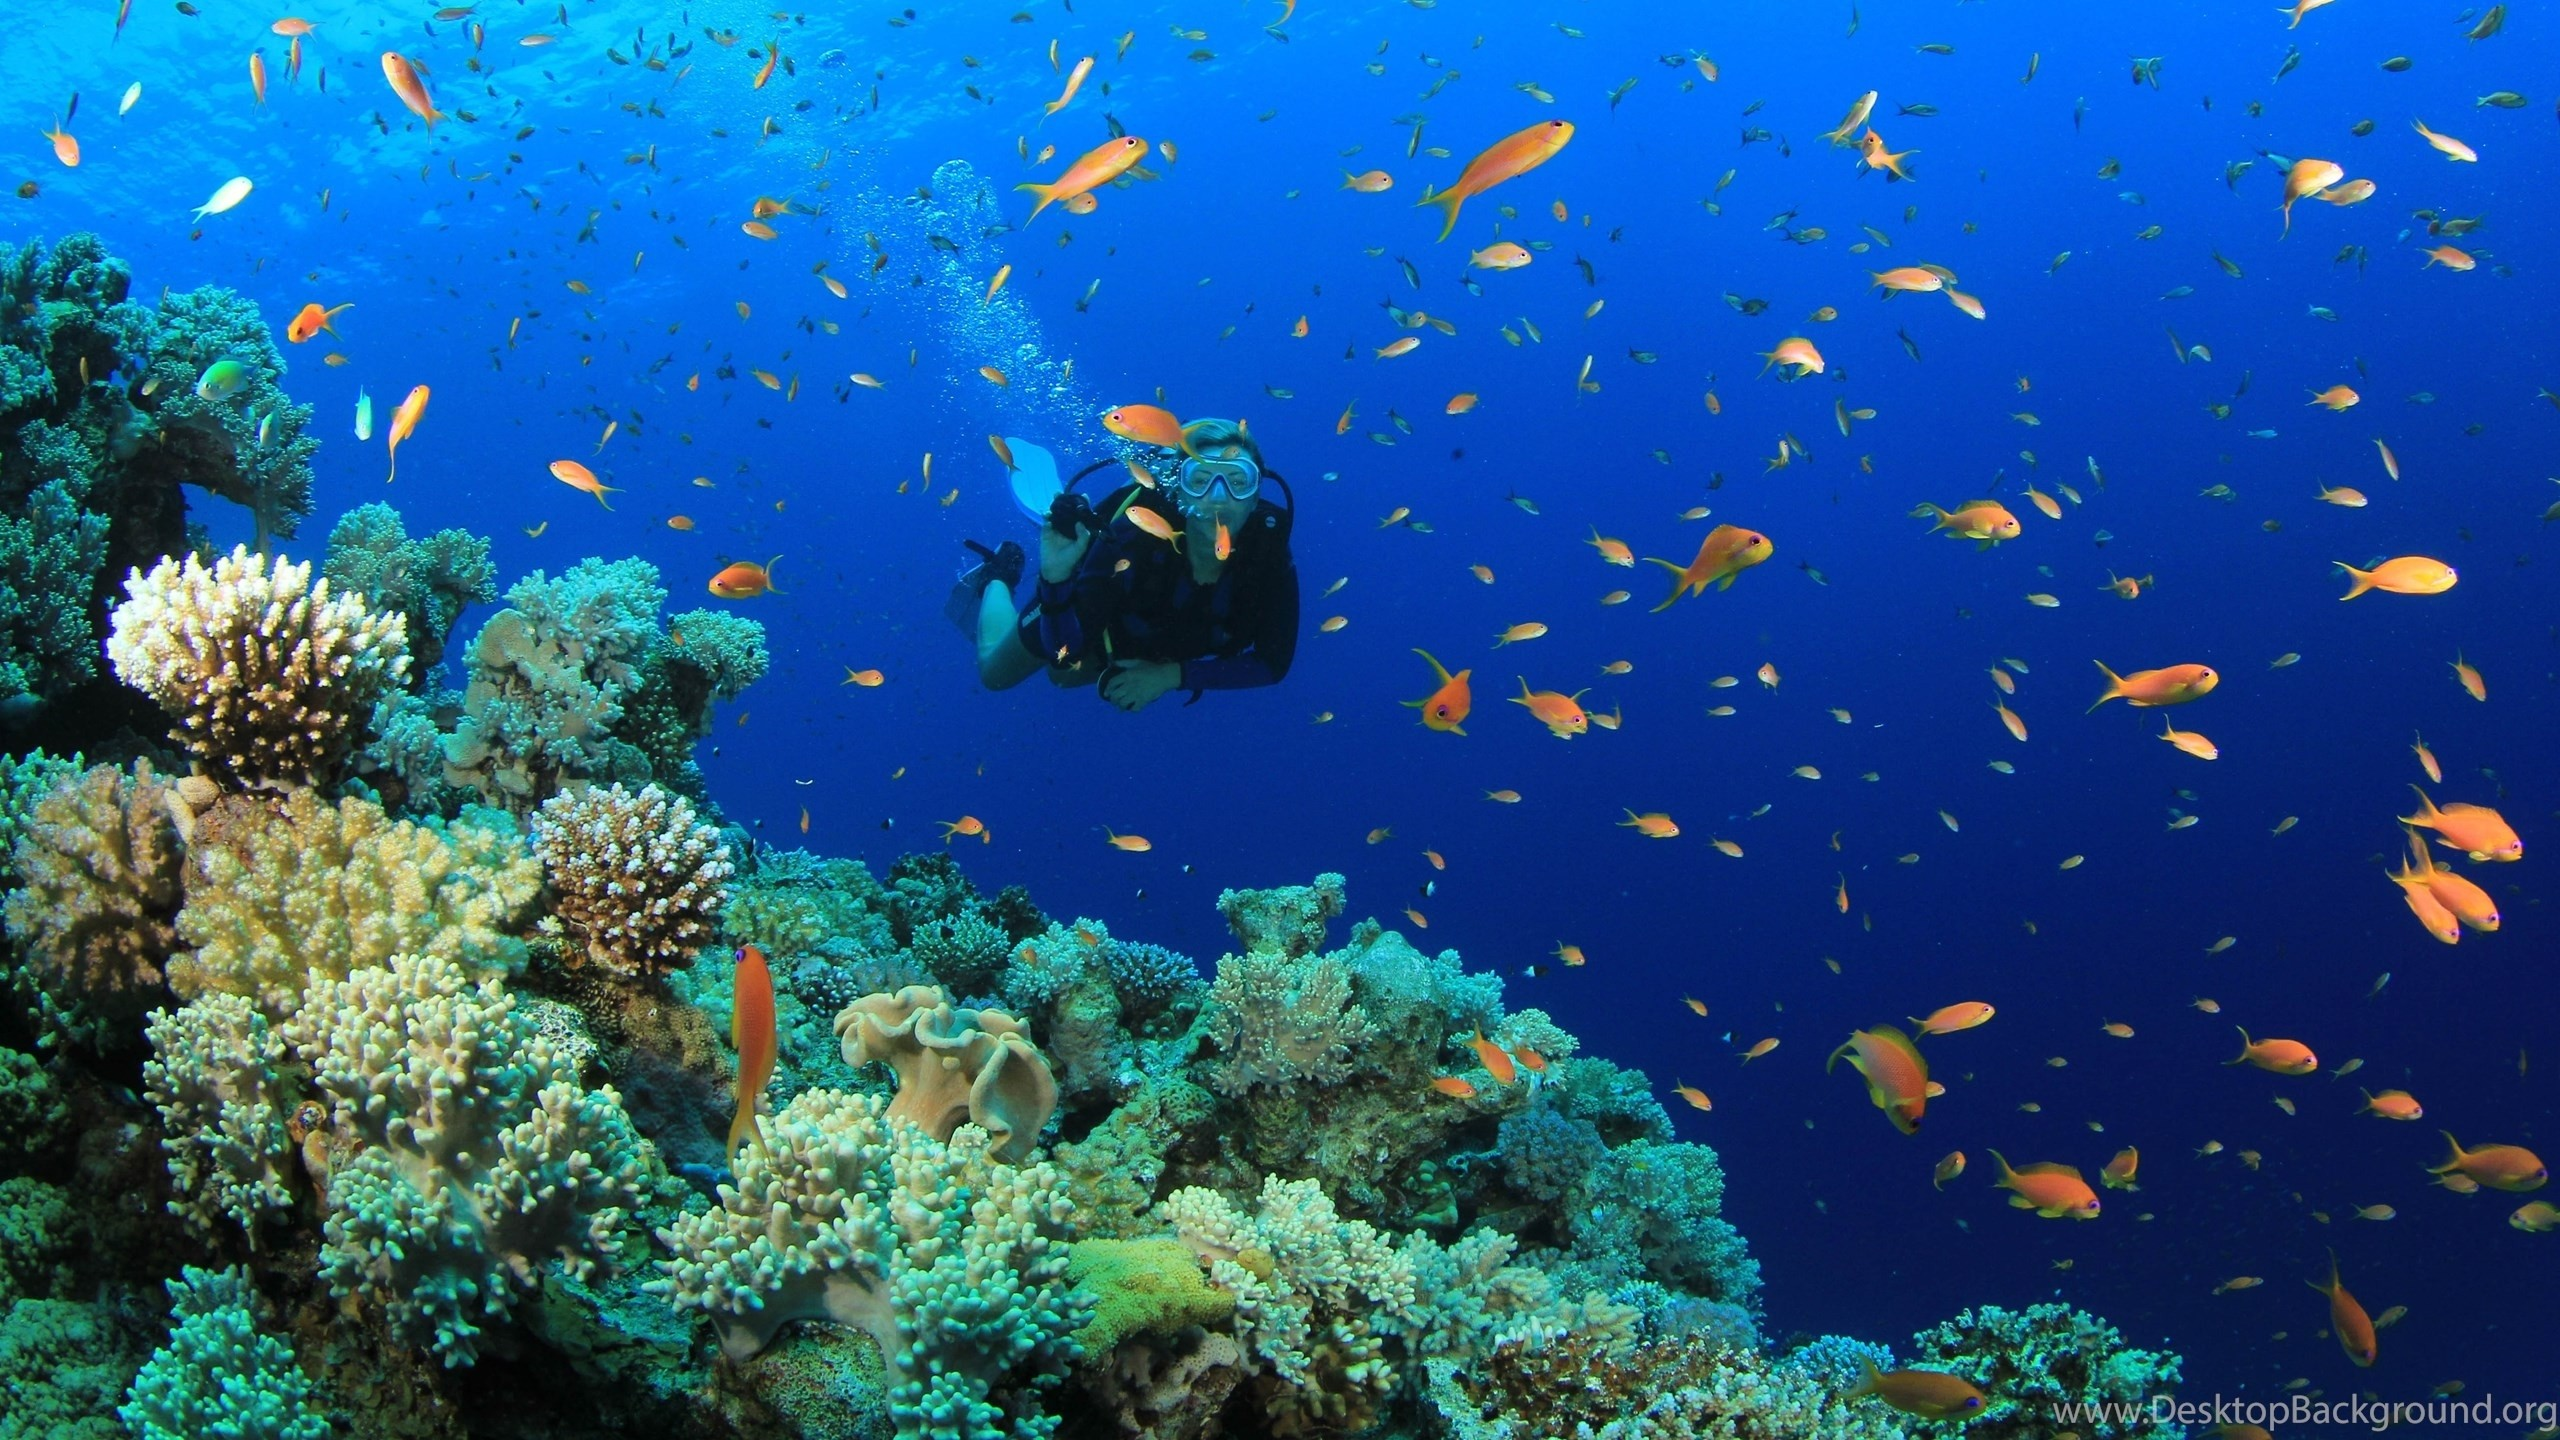 2560x1440 Title : scuba diving diver ocean sea underwater fish wallpapers 5184×2904.  Dimension : 2560 x 1440. File Type : JPG/JPEG